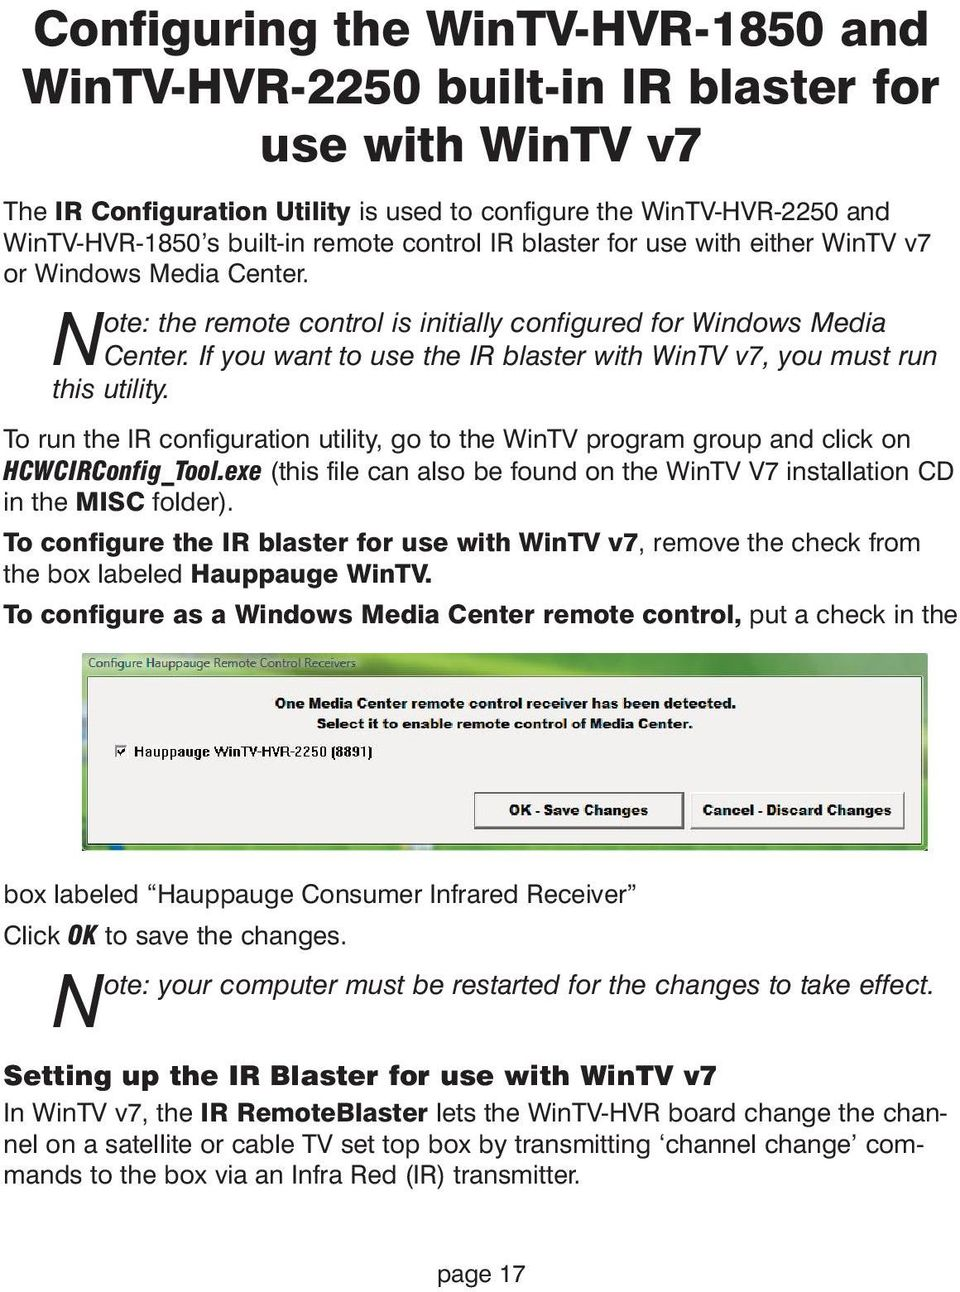 If you want to use the IR blaster with WinTV v7, you must run this utility. To run the IR configuration utility, go to the WinTV program group and click on HCWCIRConfig_Tool.